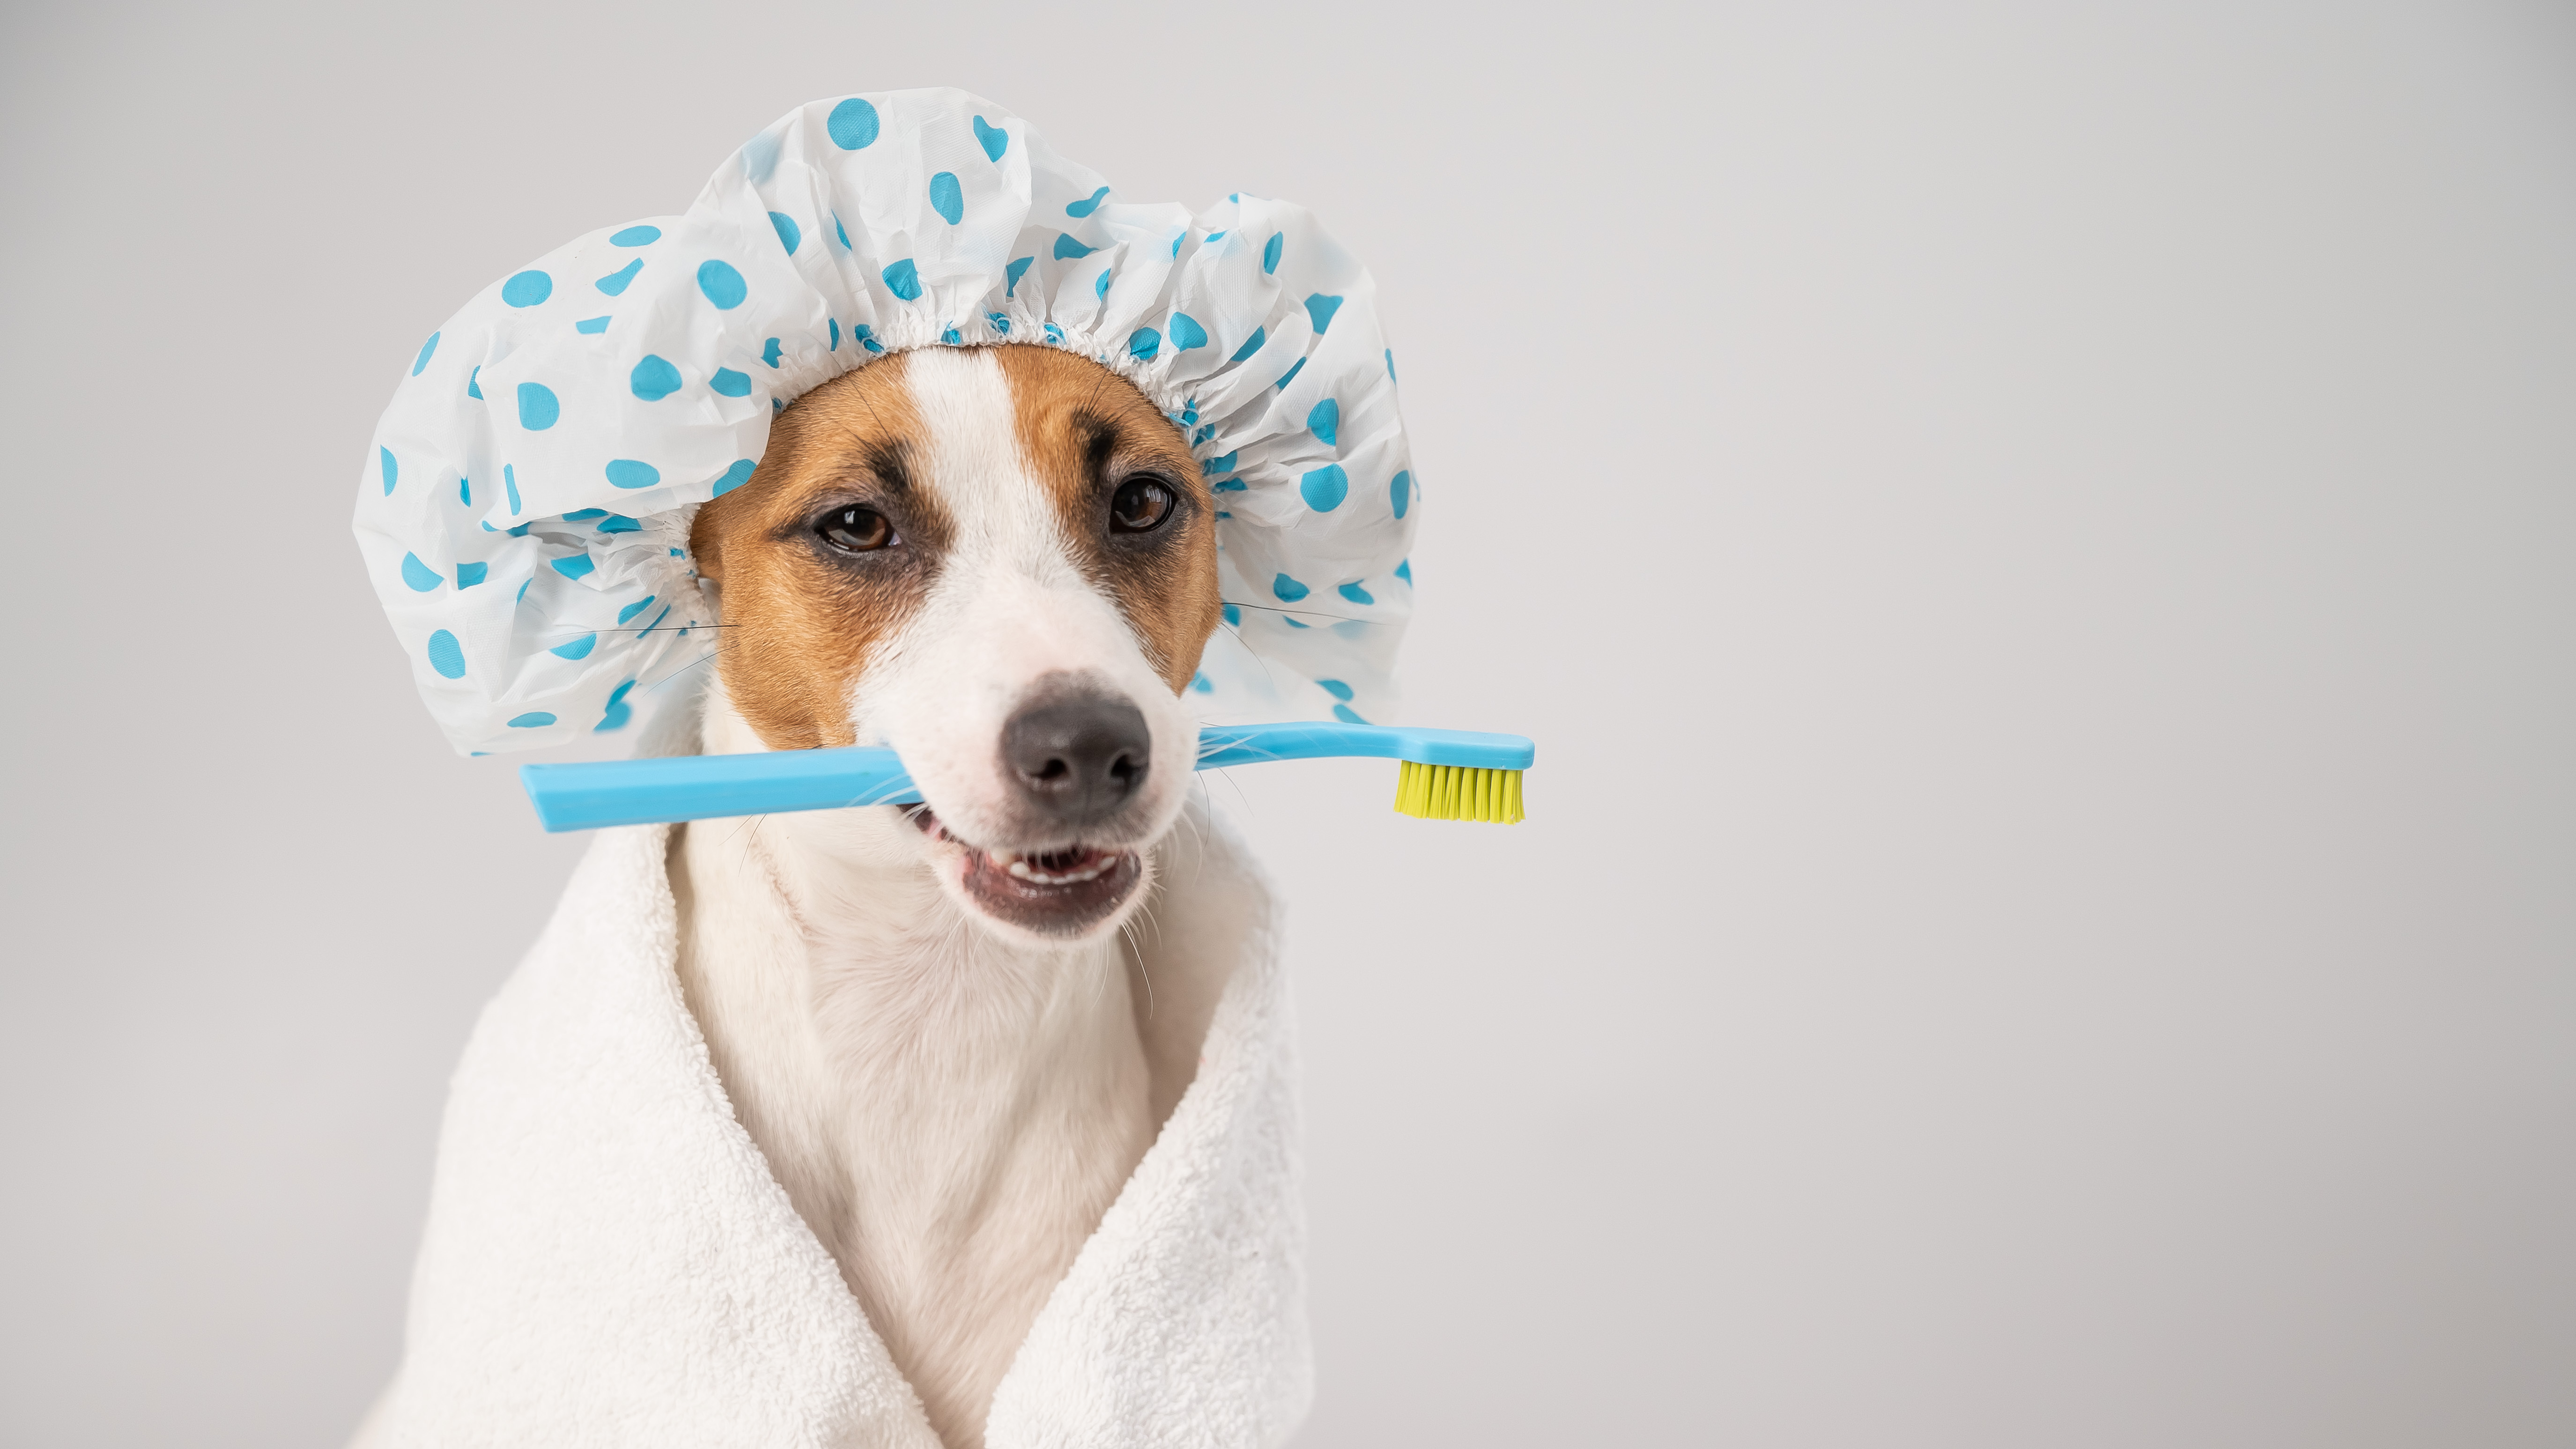 Puppy getting ready for its first bath with a shower cap and a tooth brush